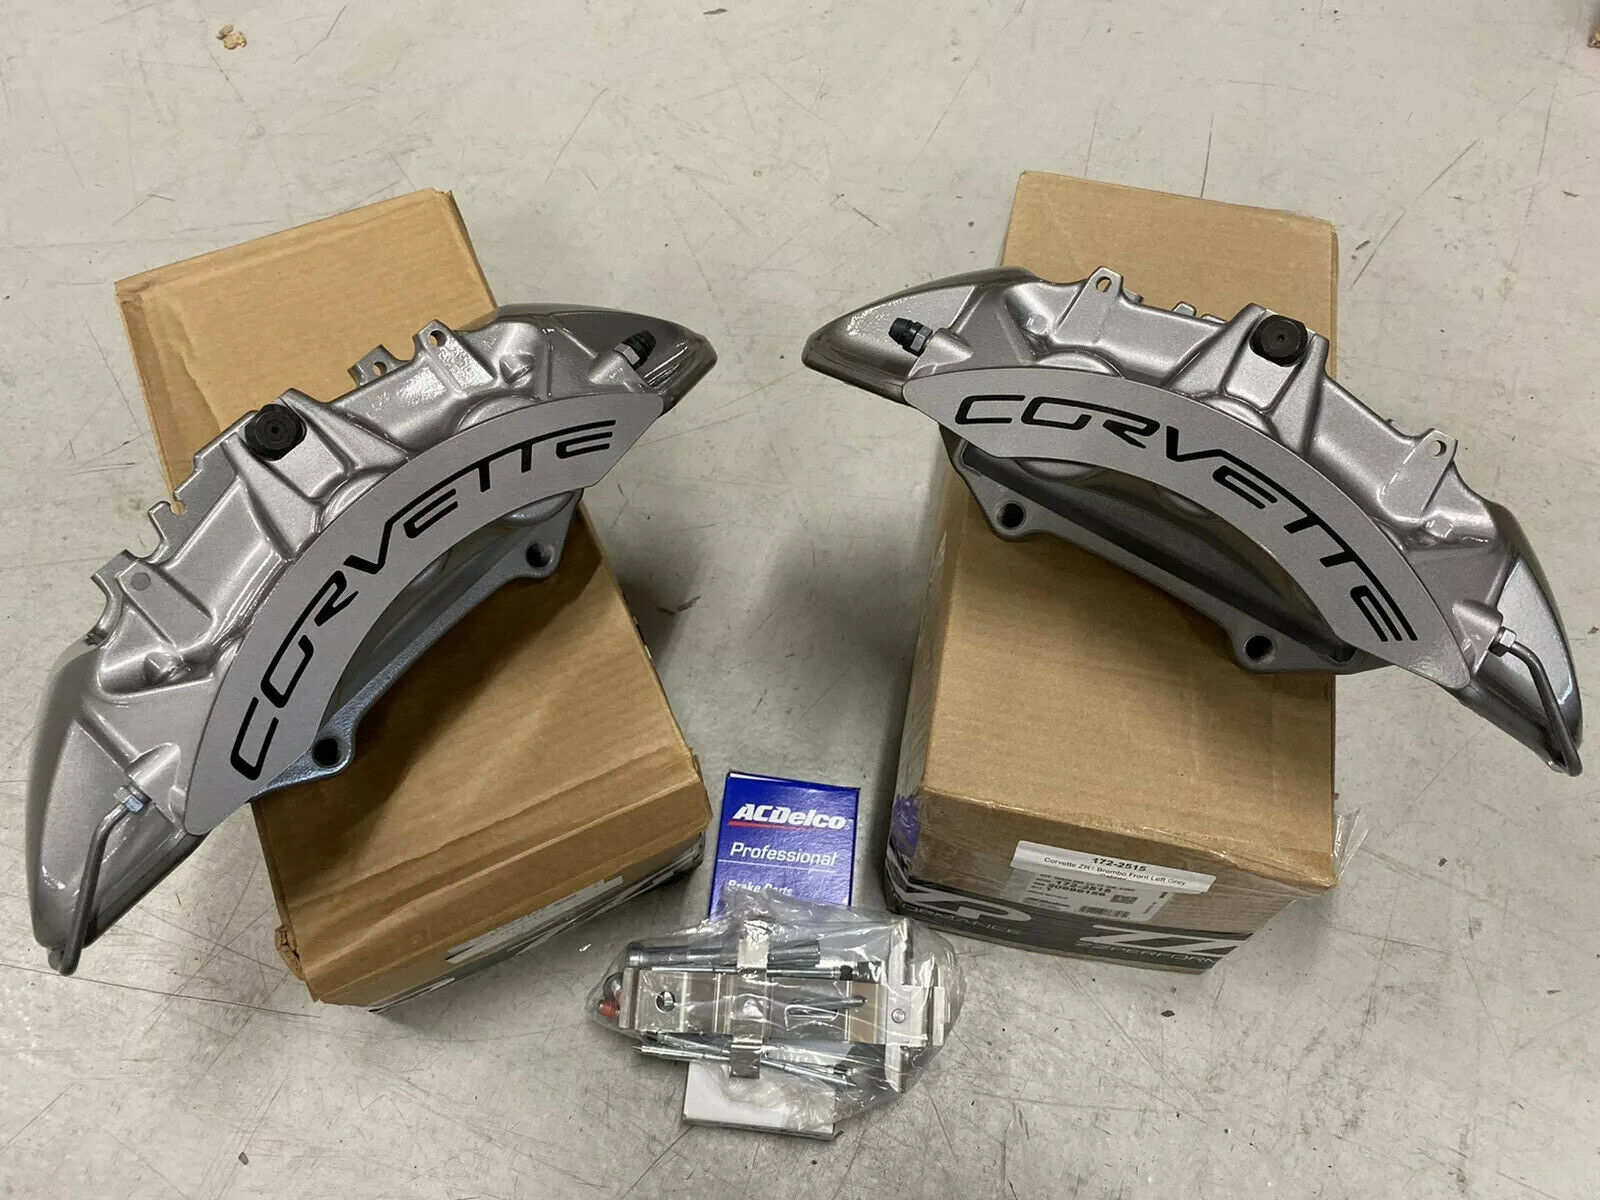 New OEM GM Brembo 2009-13 Chevy Corvette ZR1 Front  Brake Pads for Carbon Rotors